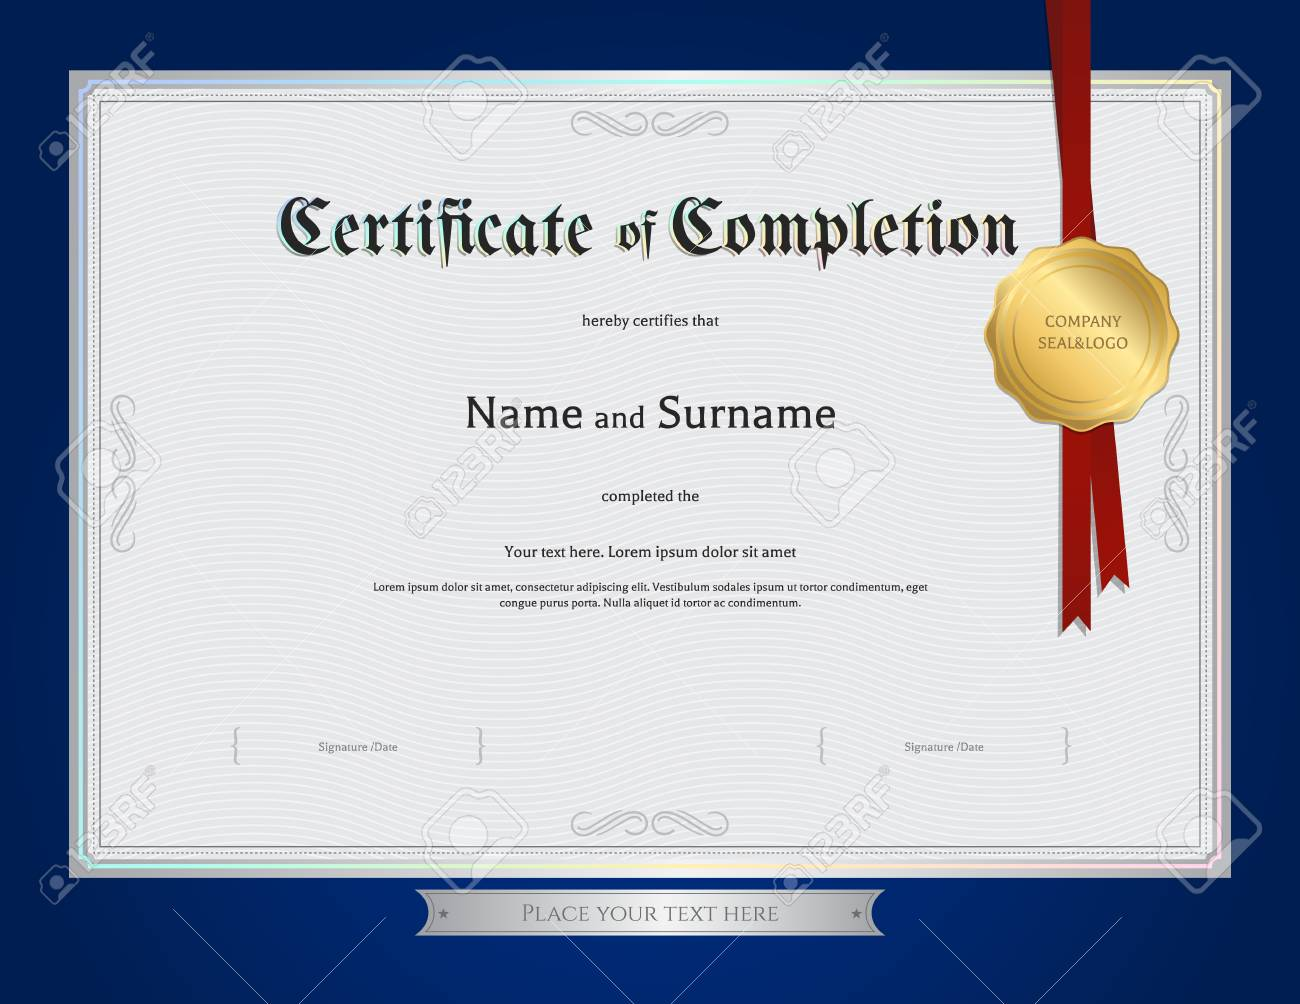 Certificate Of Completion Template With Blue Border Royalty Free ...